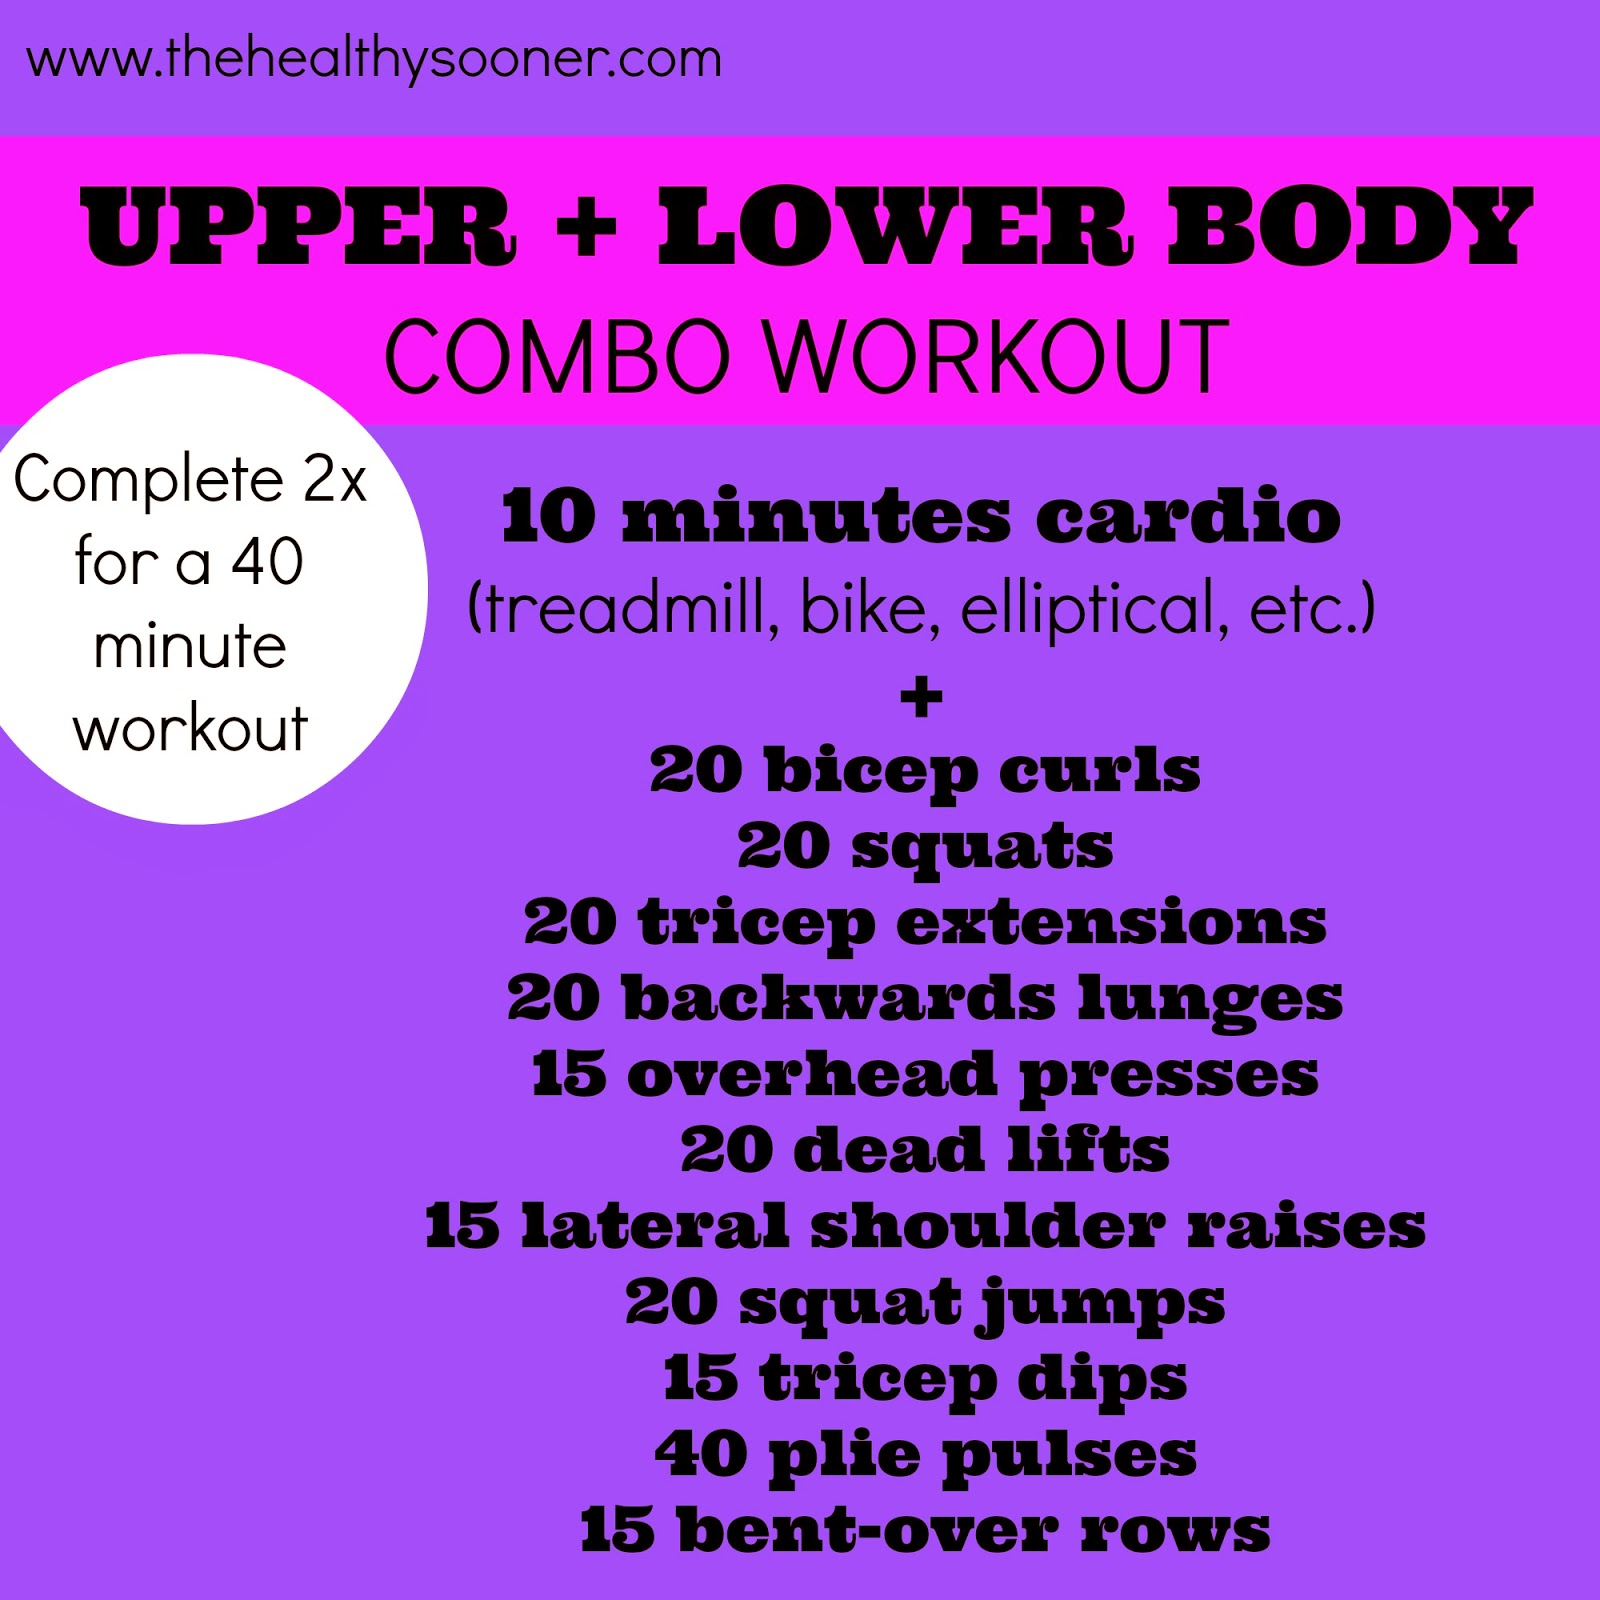 This Workout Could Be Easily Tailored To Any Ability Level Just Up The Intensity Of Cardio And Increase Your Weights For More A Challenge